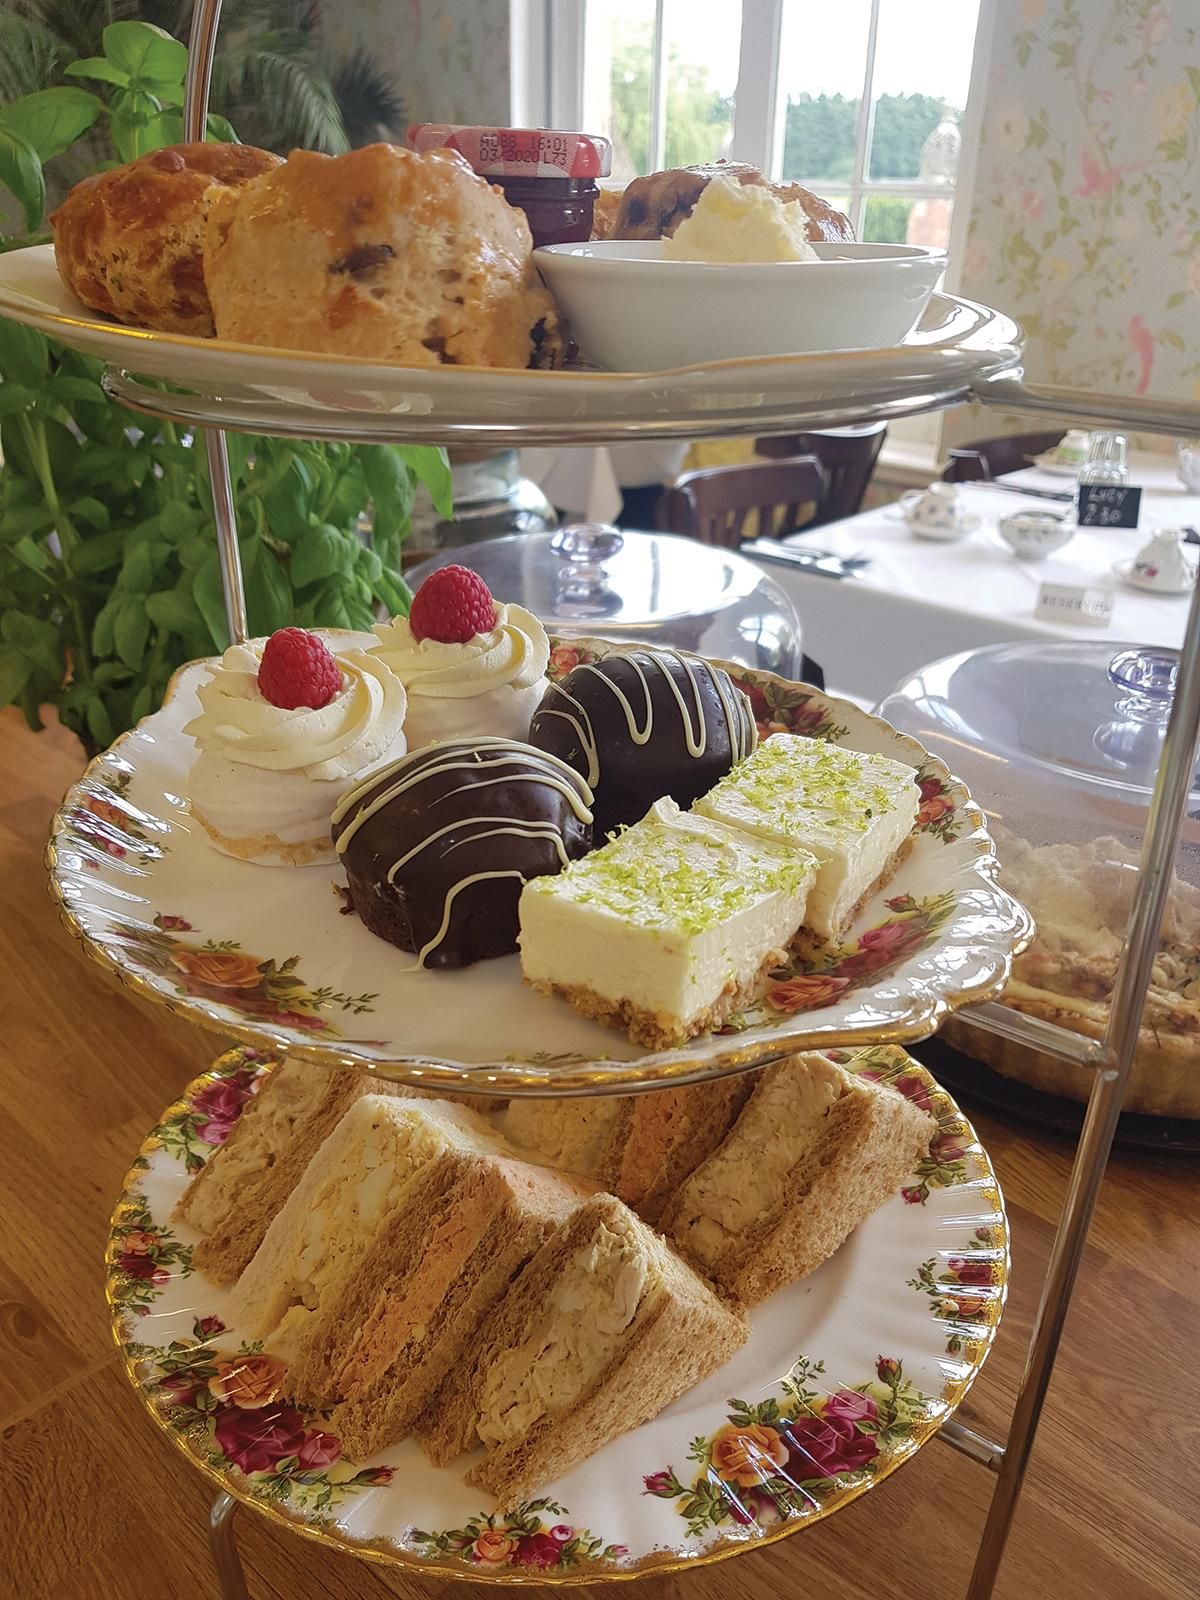 Images from The Orangery Tea Room